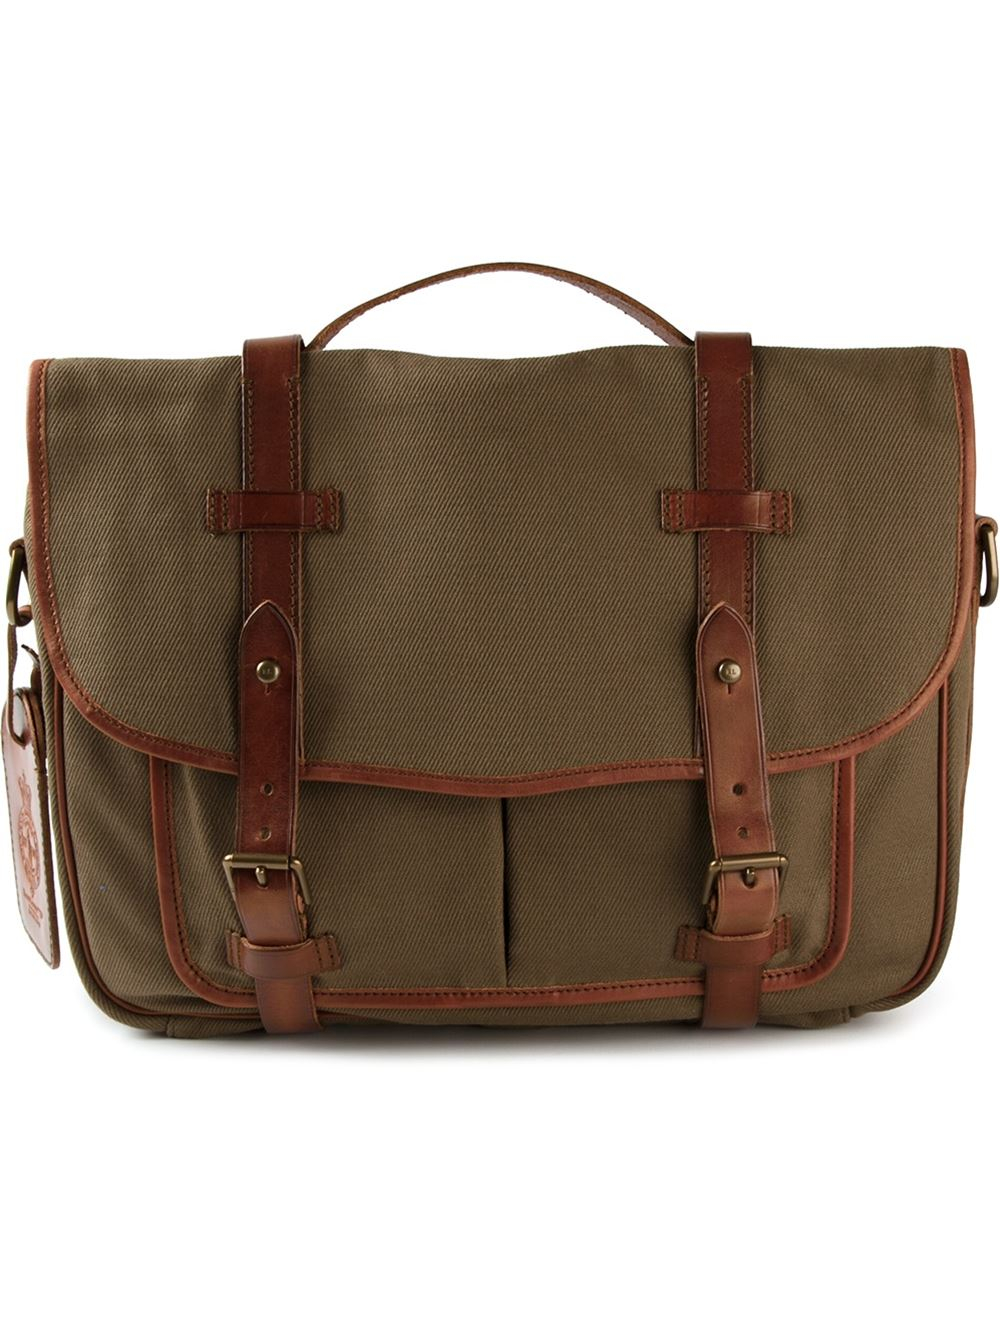 65e6bb9ac053 Lyst - Polo Ralph Lauren Leather Trim Messenger Bag in Green for Men